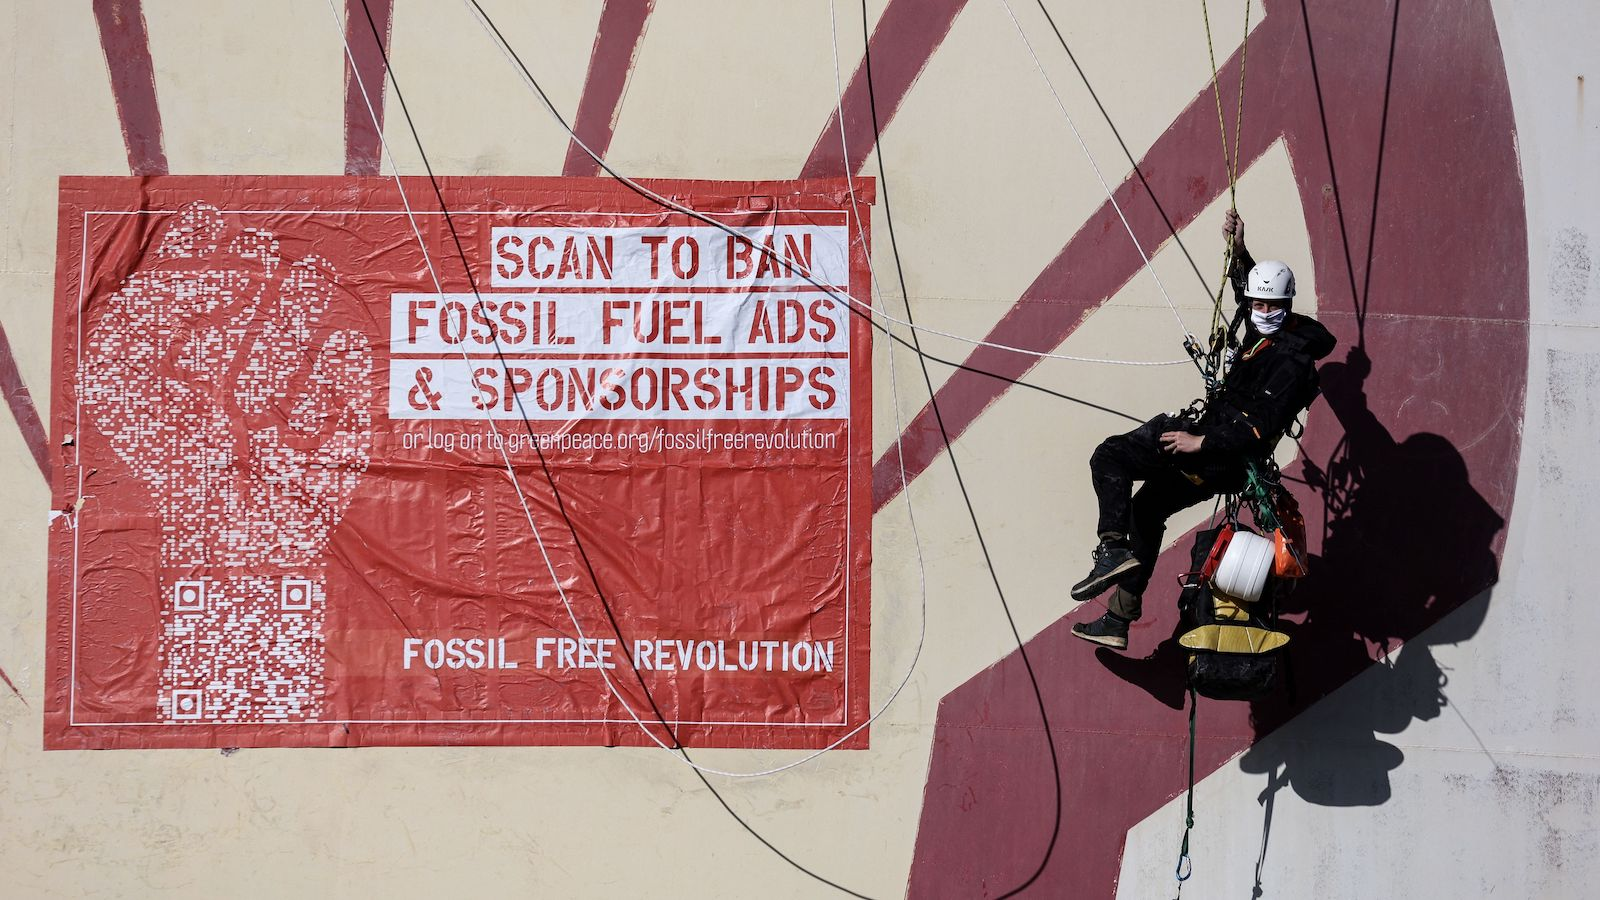 European activists want to ban fossil fuel ads. Why can't we do that here?